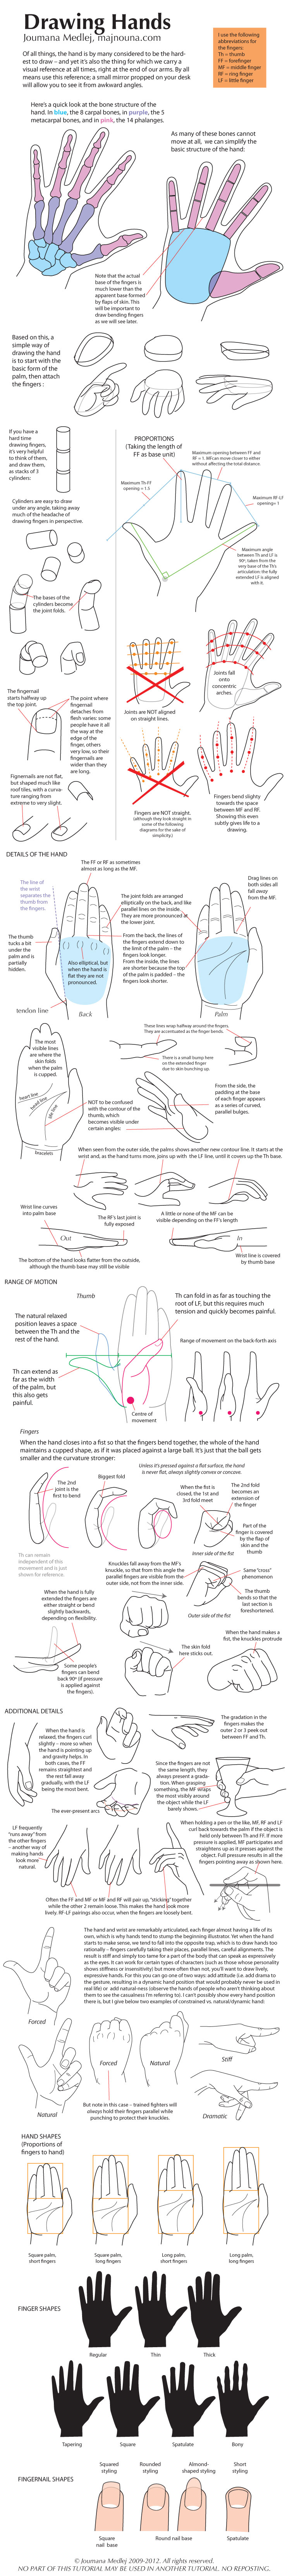 drawing_hands_by_cedarseed-d21vq4o